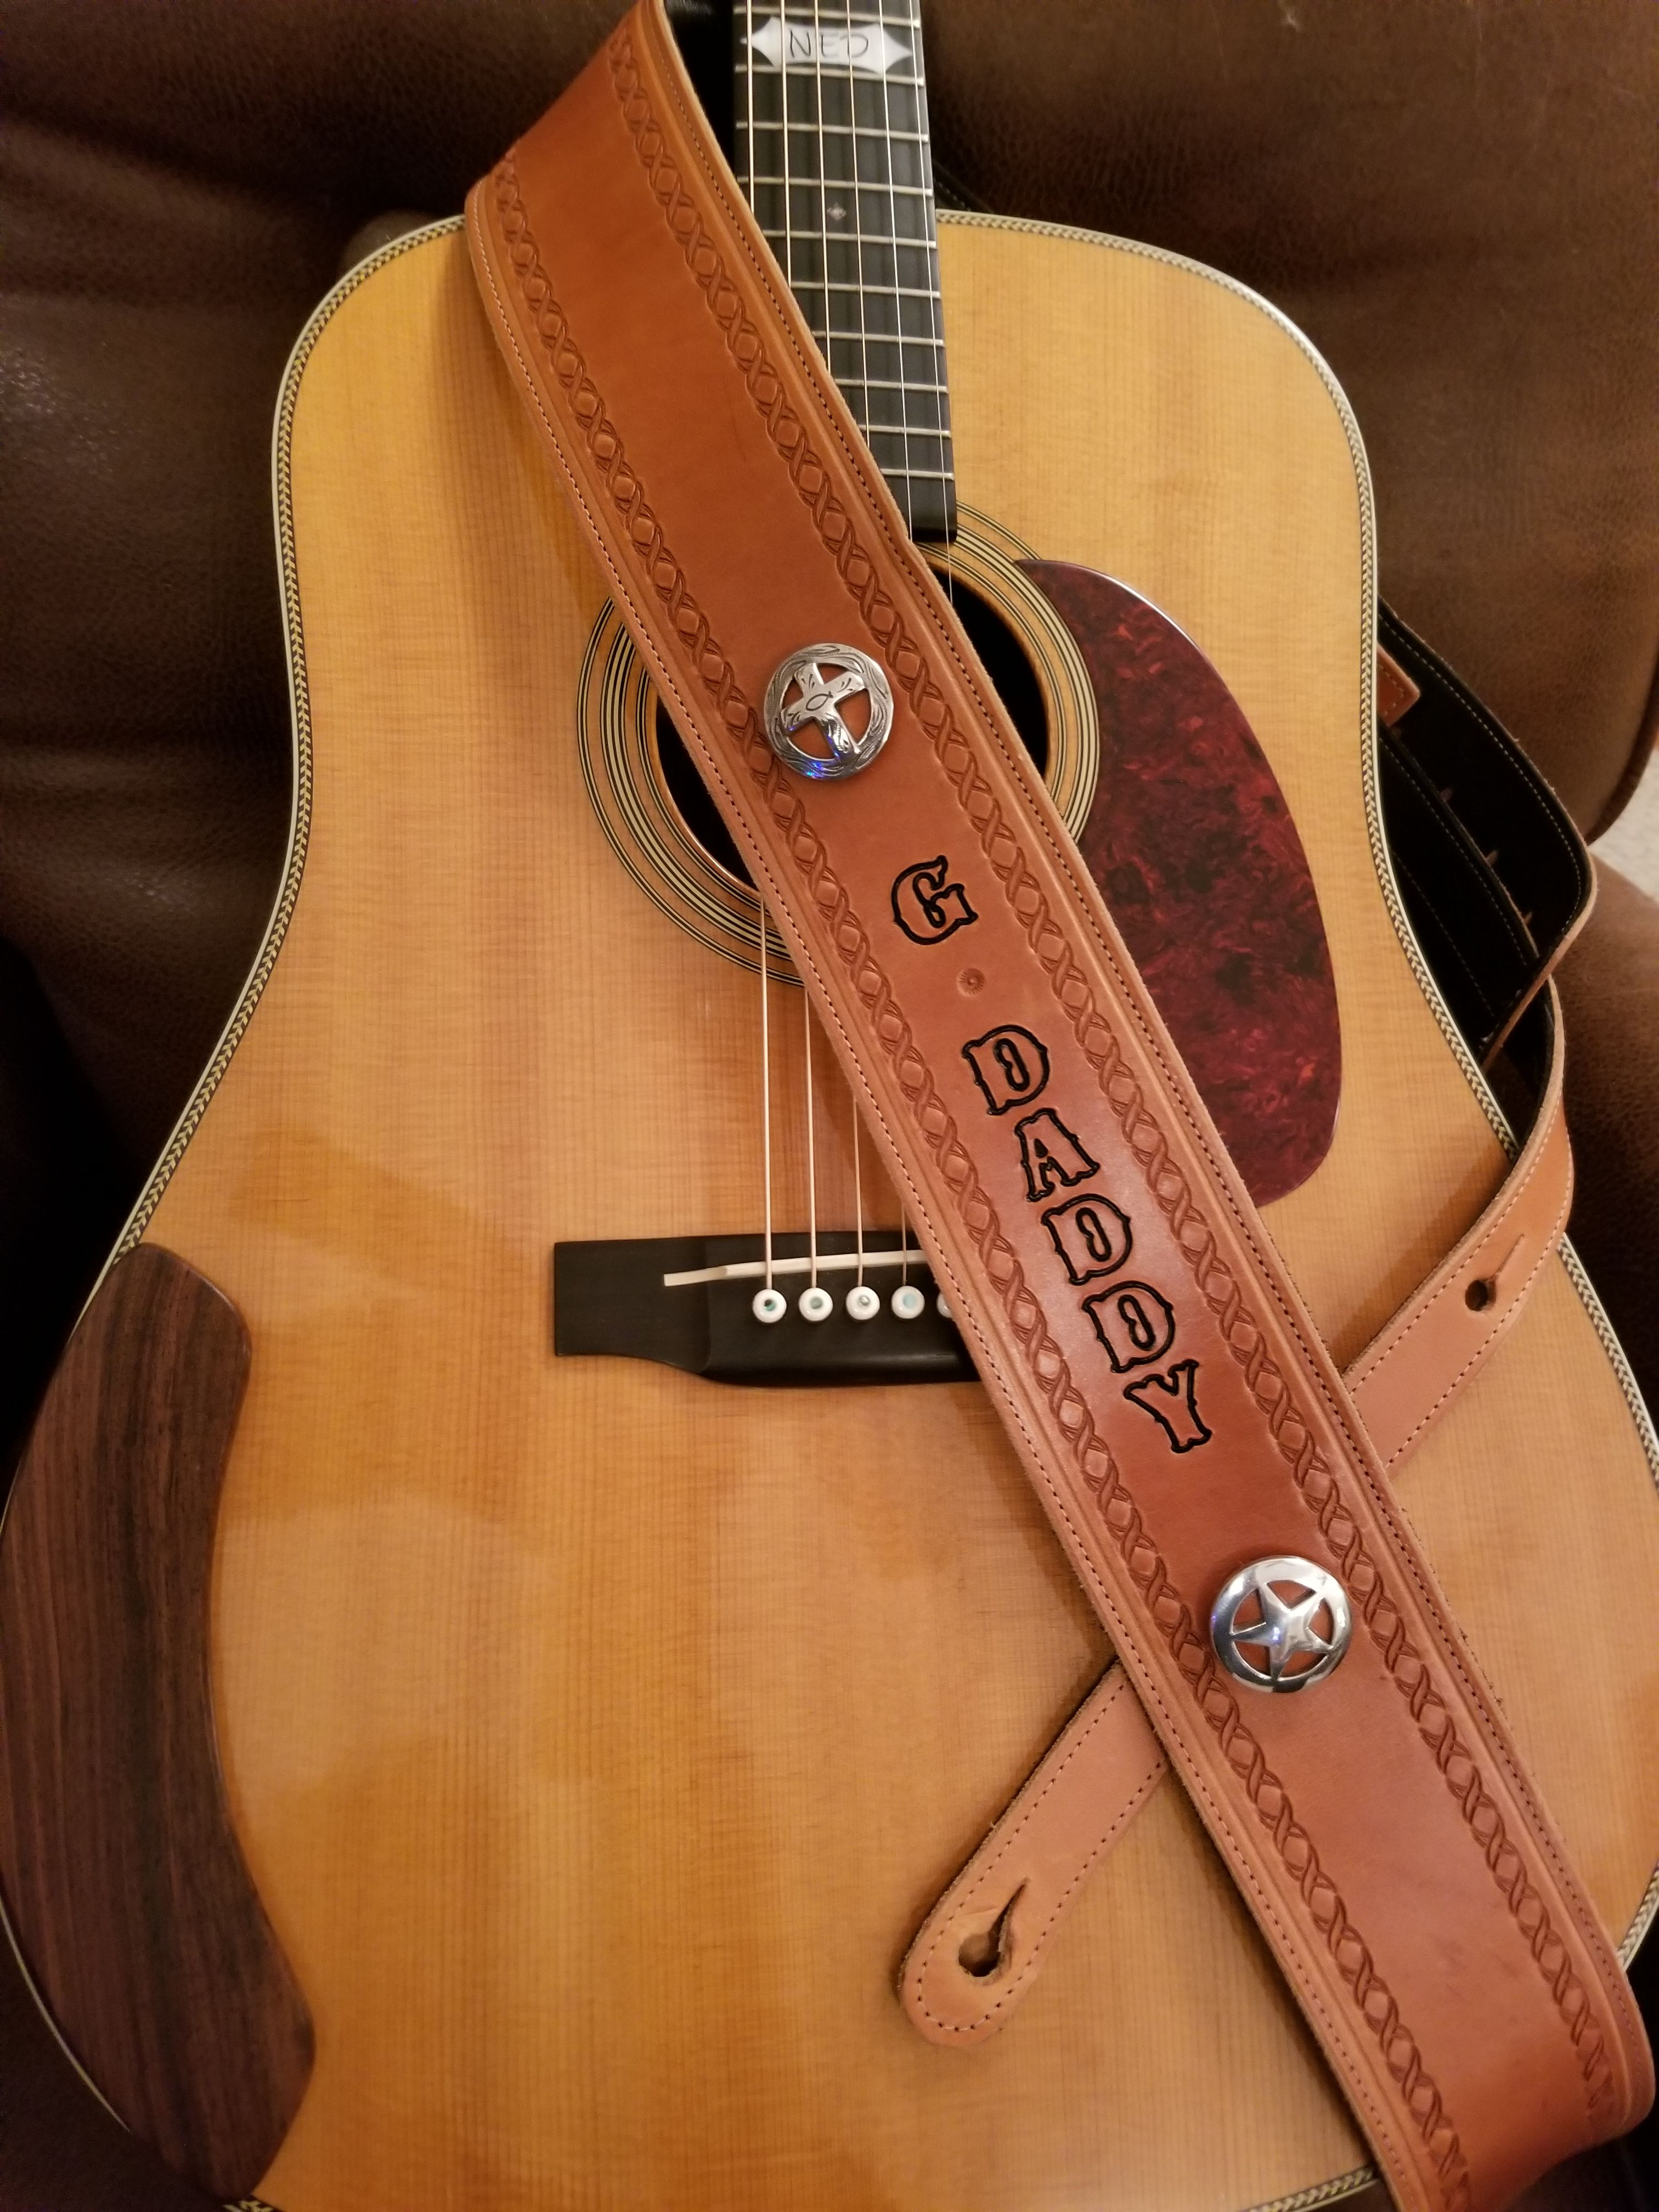 A Beautiful Customized Martin Hd 28 Guitar Owned By Mike In Maryland Usa Displaying One Of Our Handma Leather Guitar Straps Handmade Guitar Strap Guitar Strap